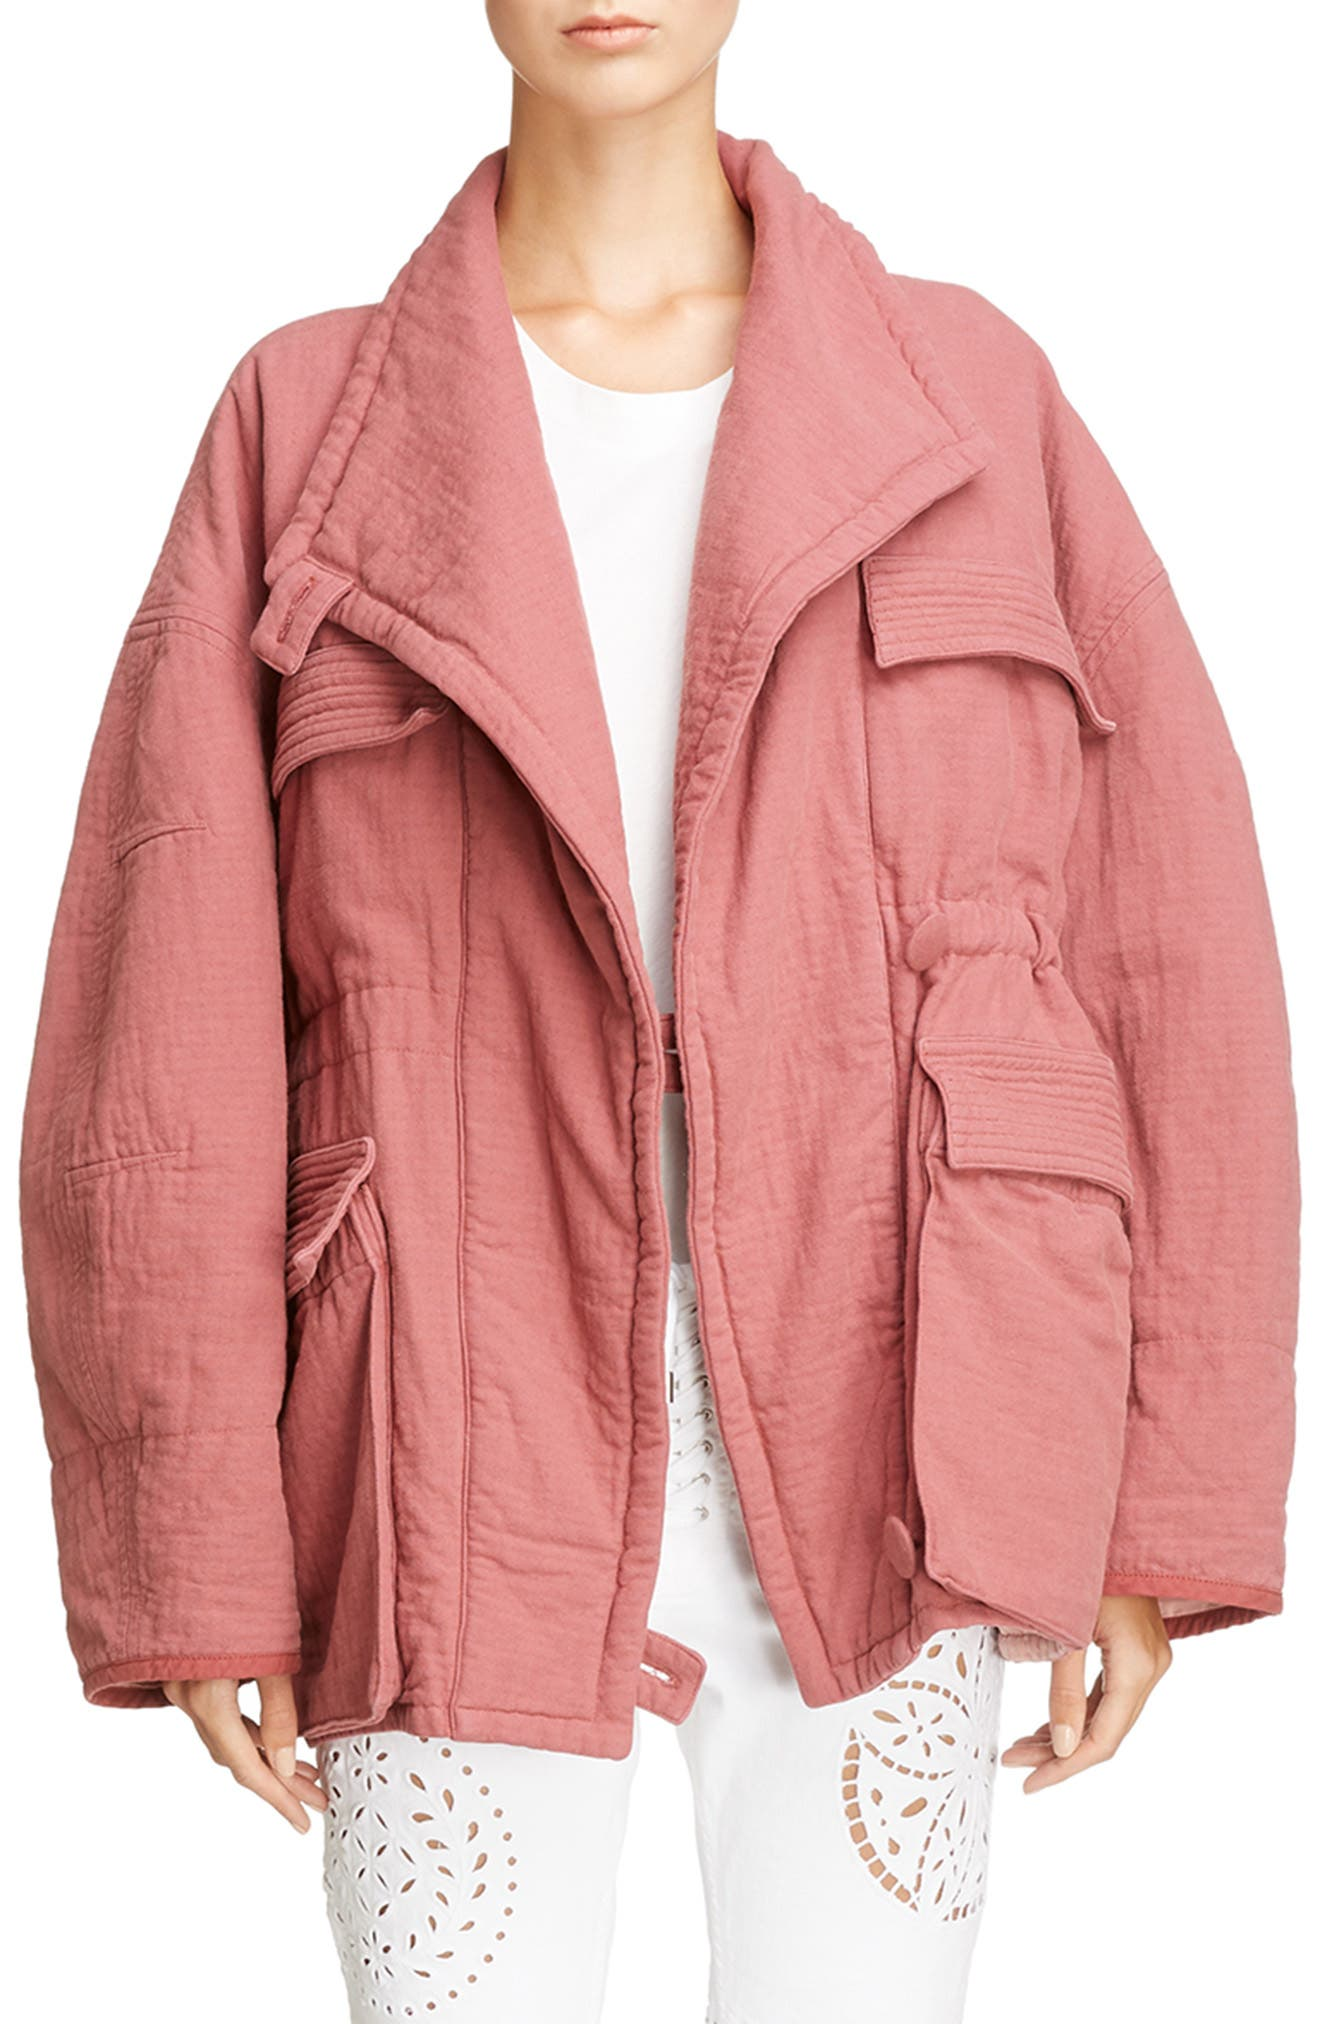 Oversize Textured Cotton Jacket,                             Main thumbnail 1, color,                             600